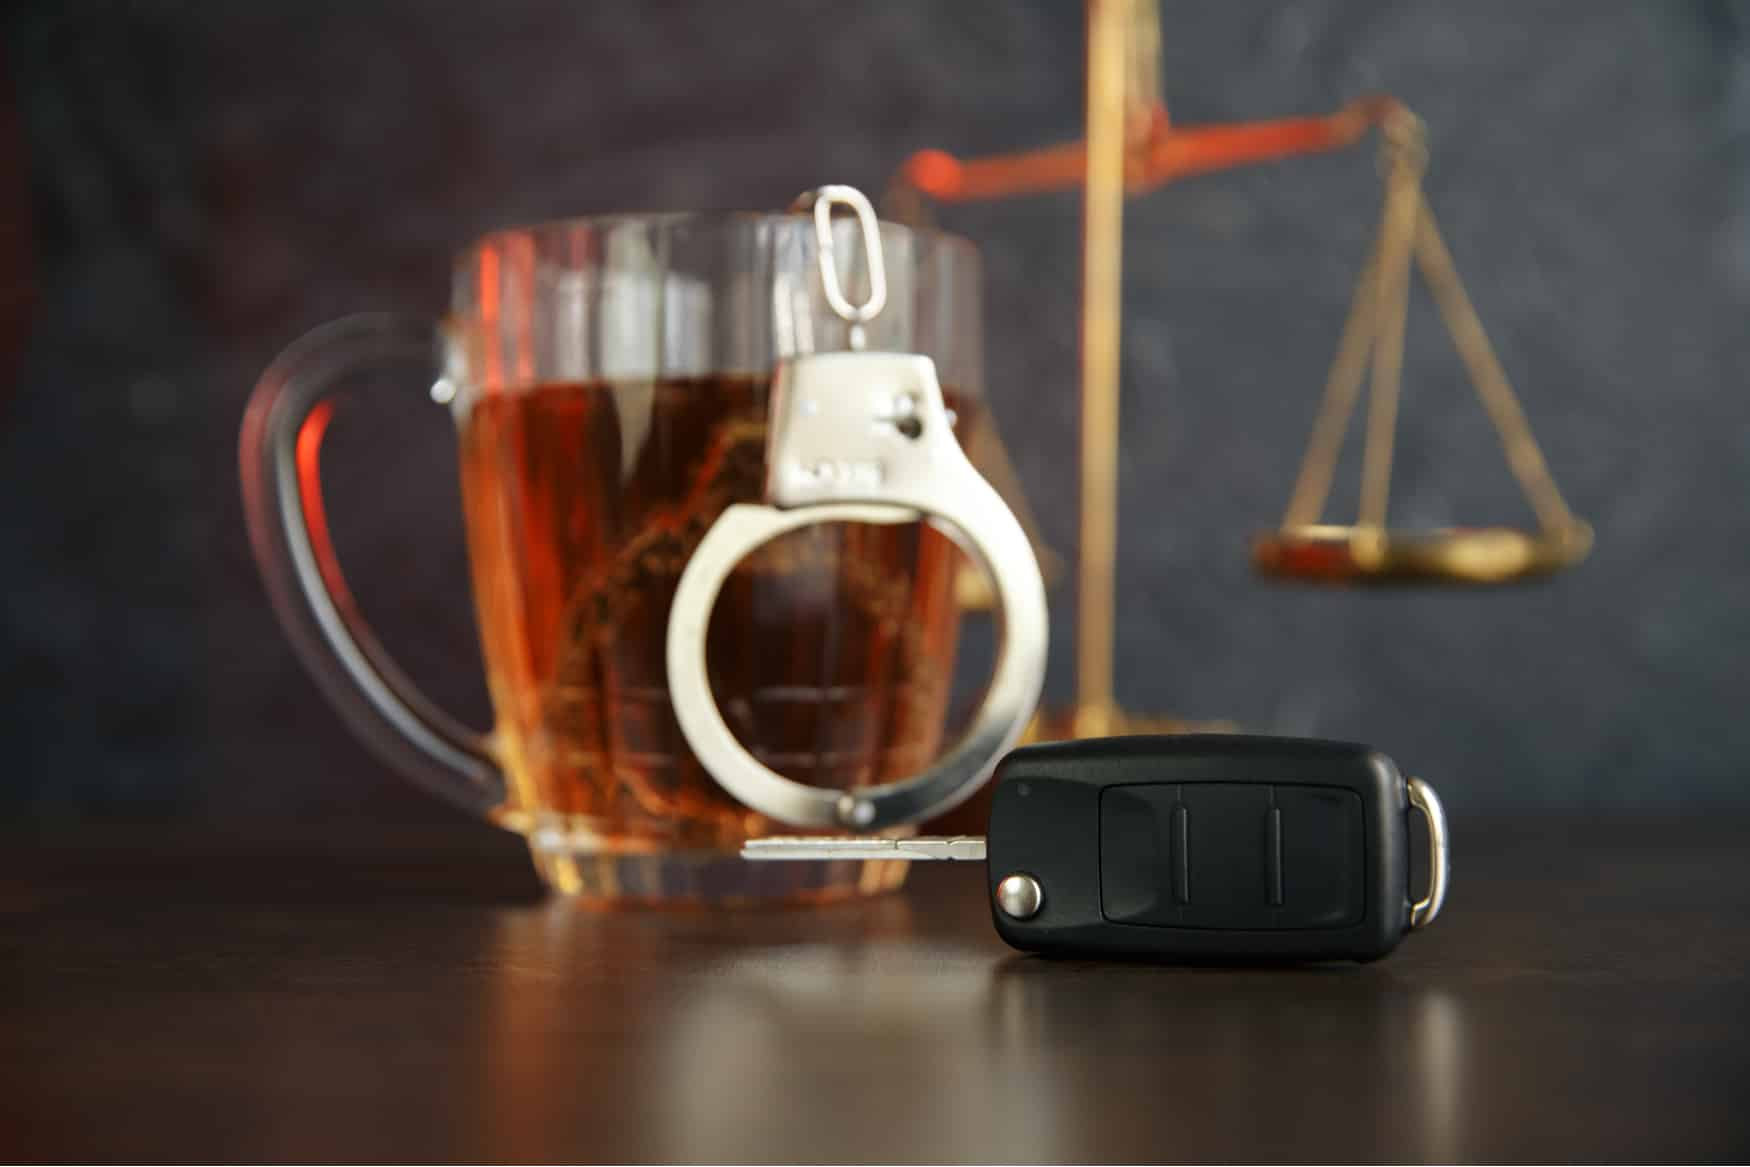 A scale, handcuffs, a drink, and car keys on a desk to represent a DUI attorney